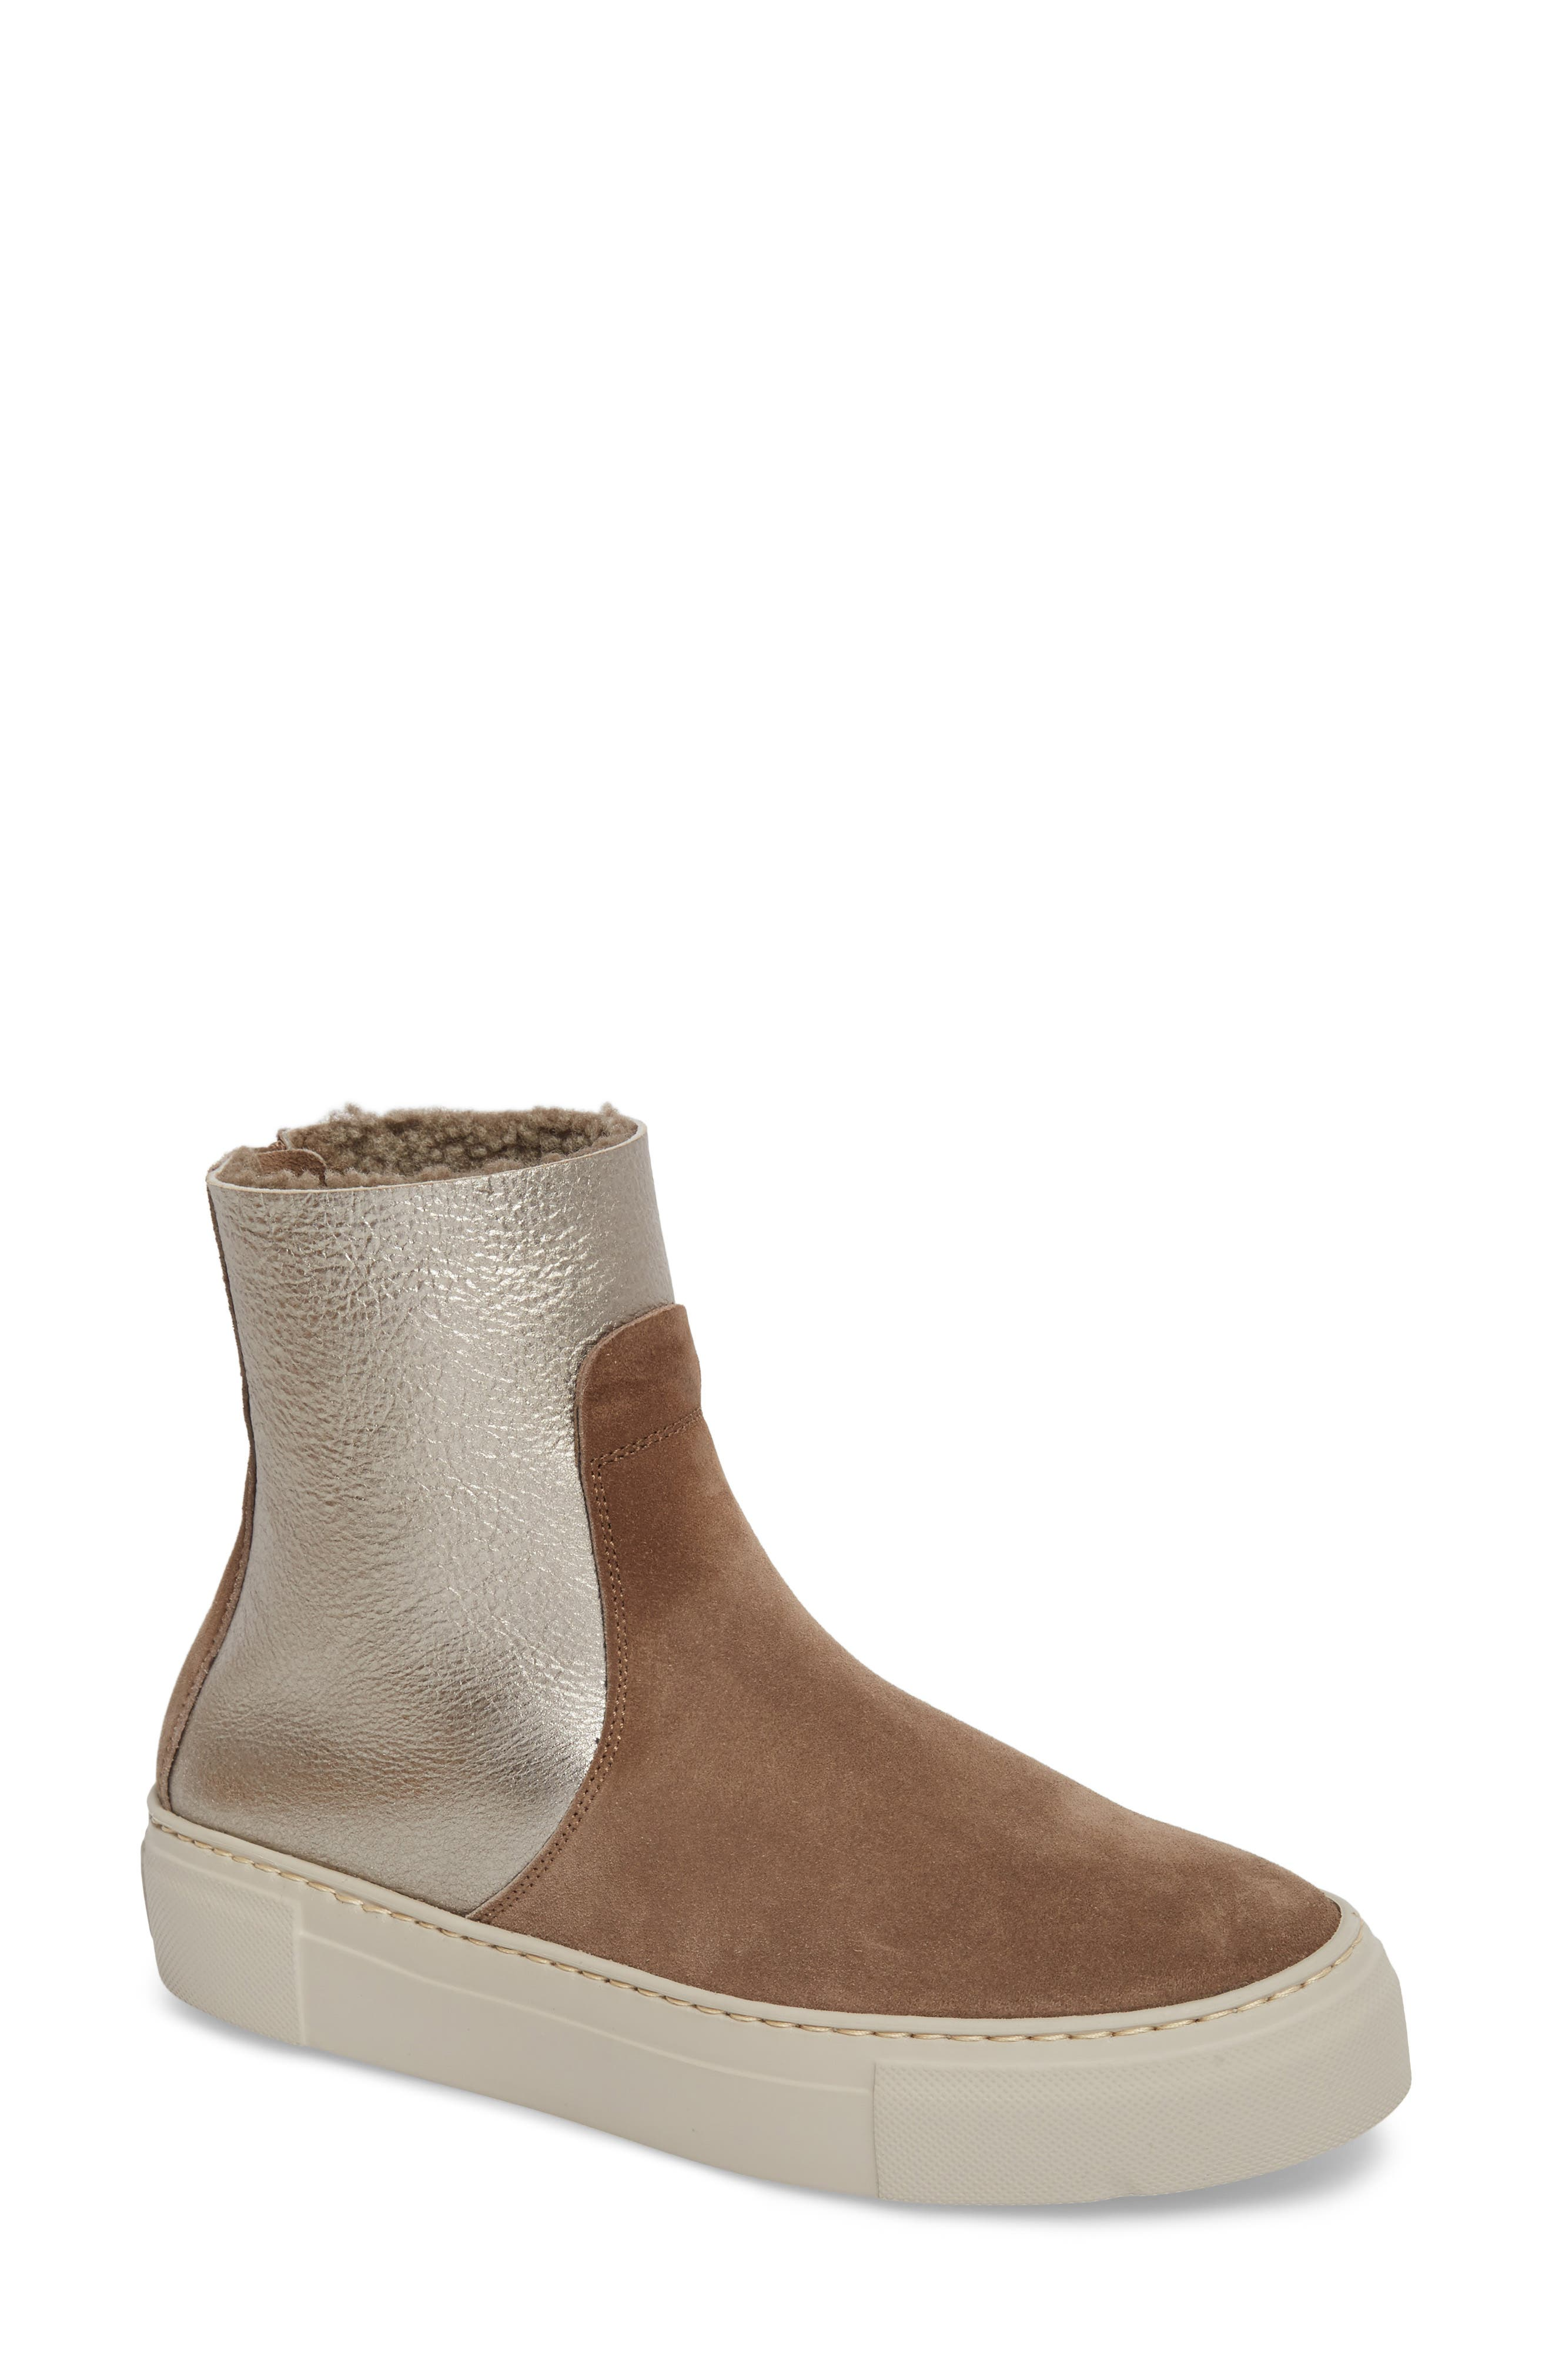 AGL Sport Genuine Shearling Lined Bootie (Women)